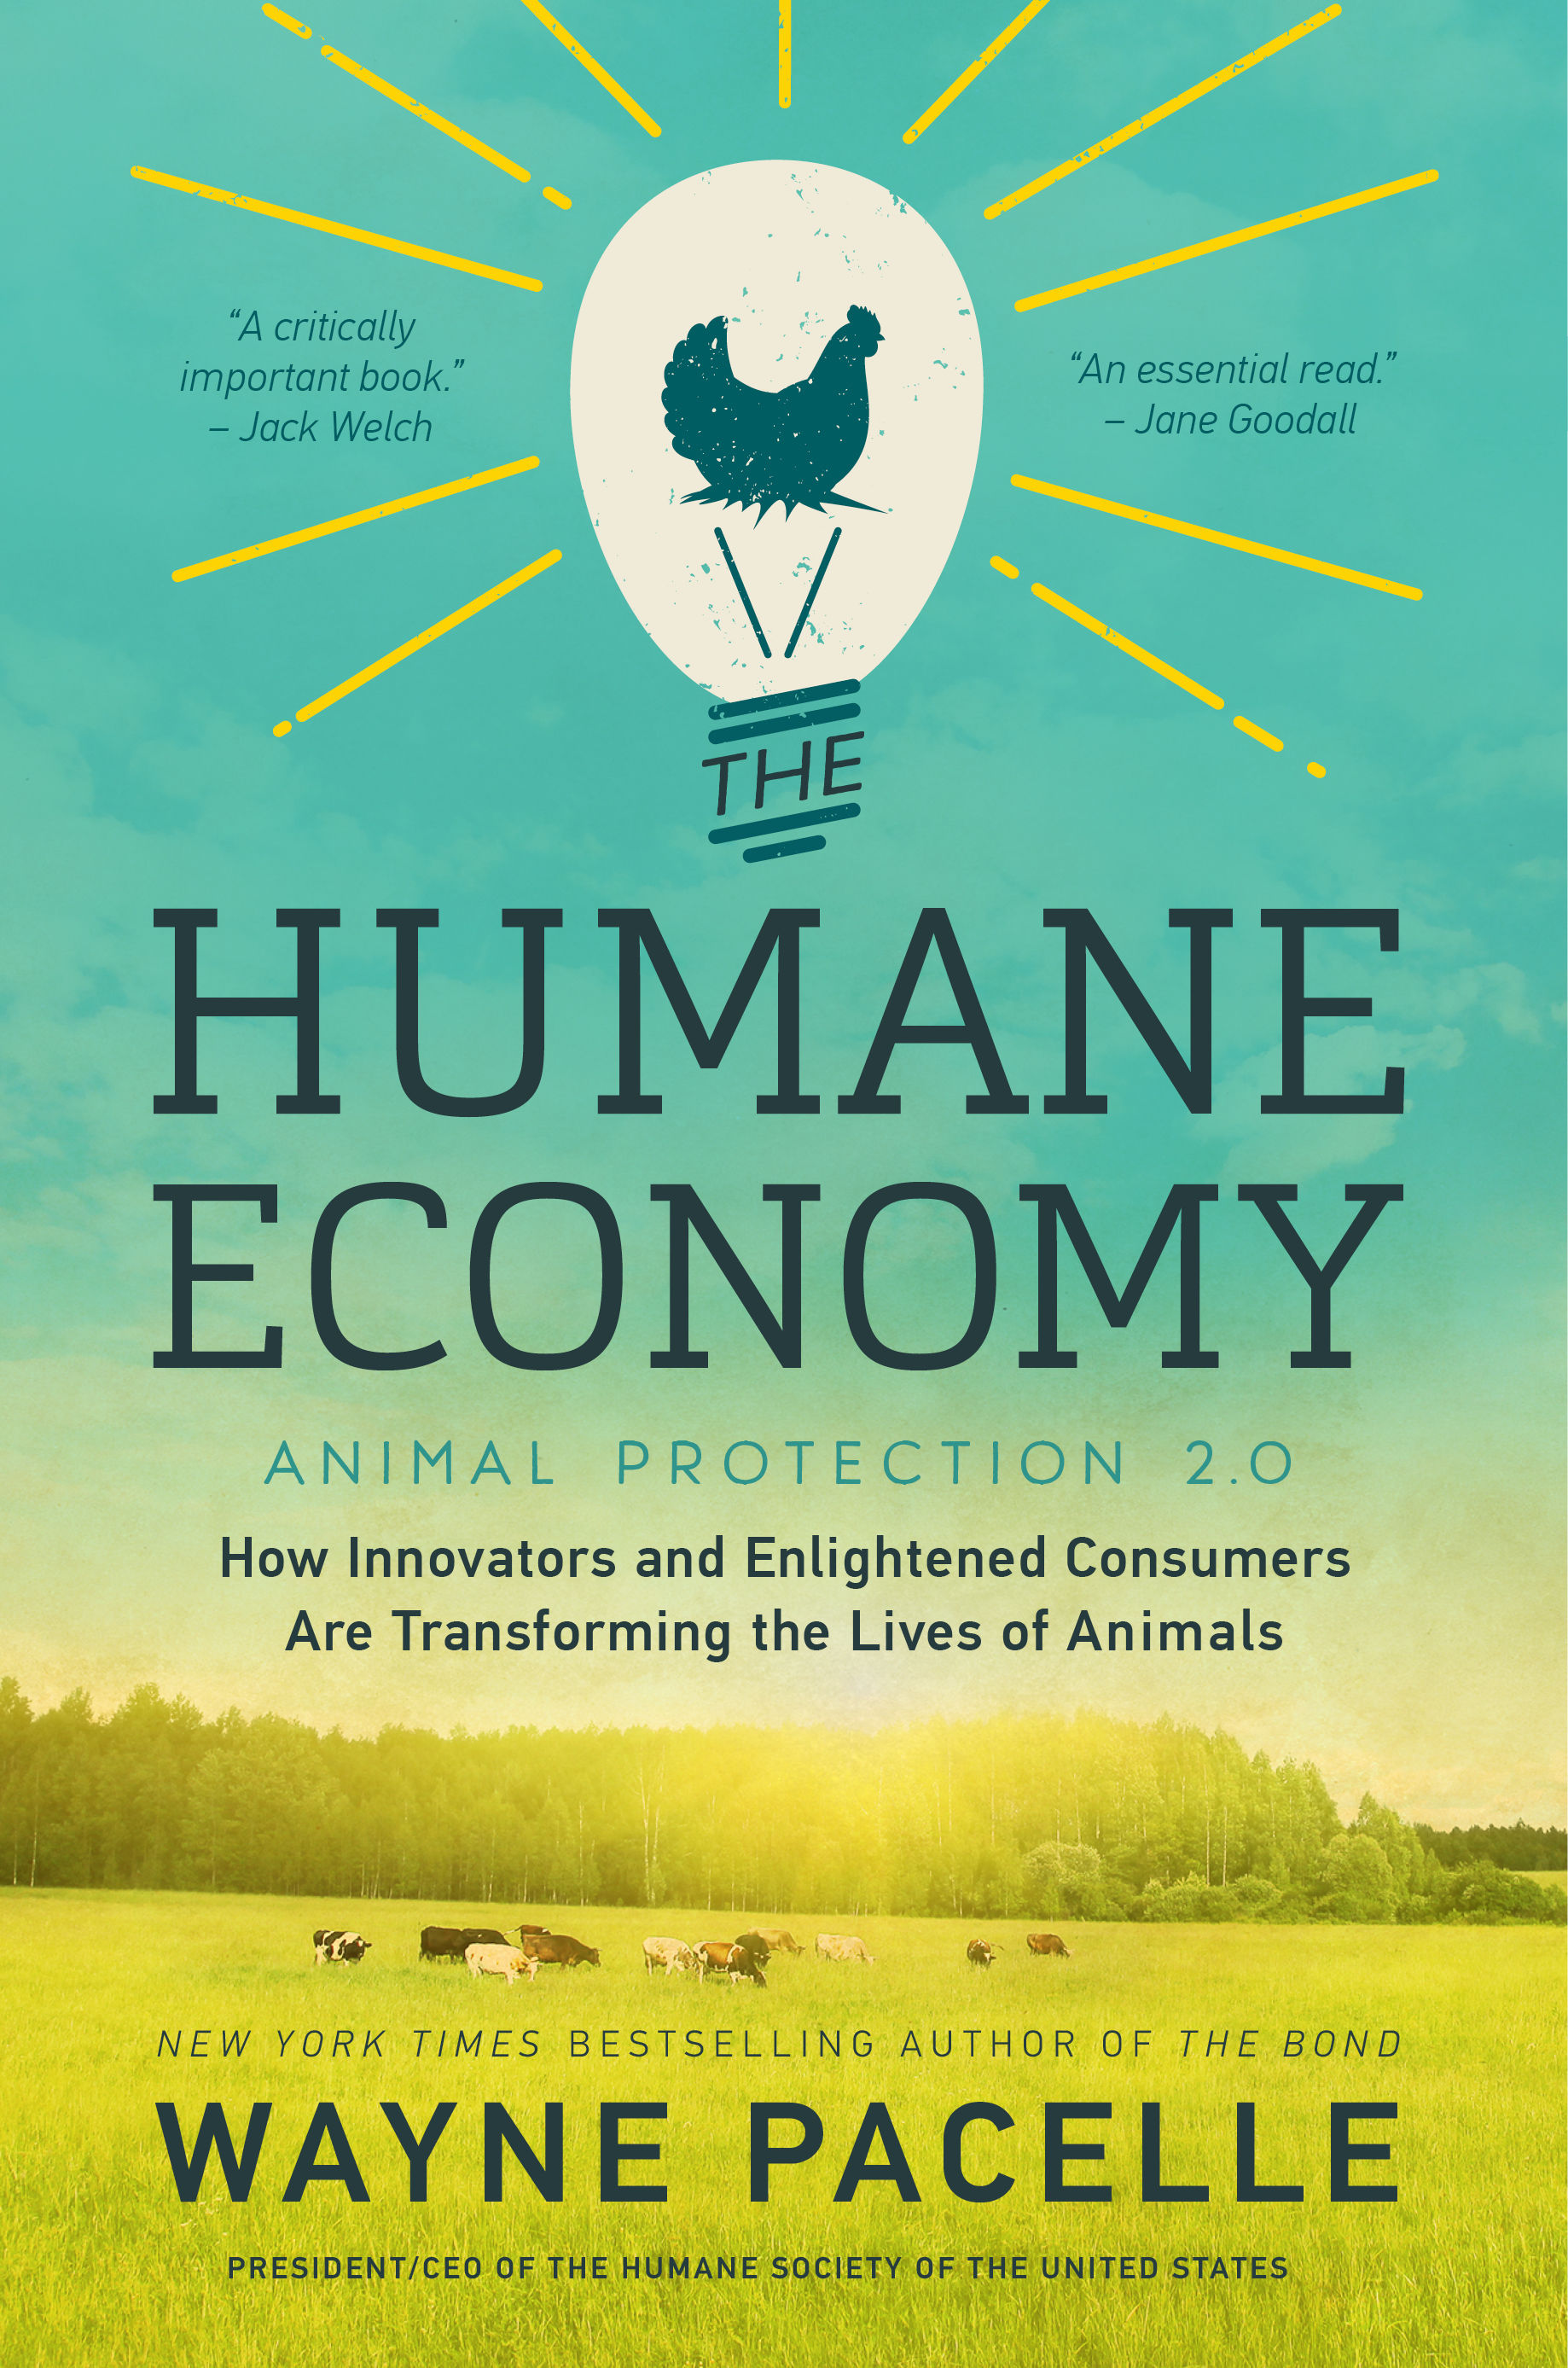 The Humane Economy Book Cover Courtesy The HSUS